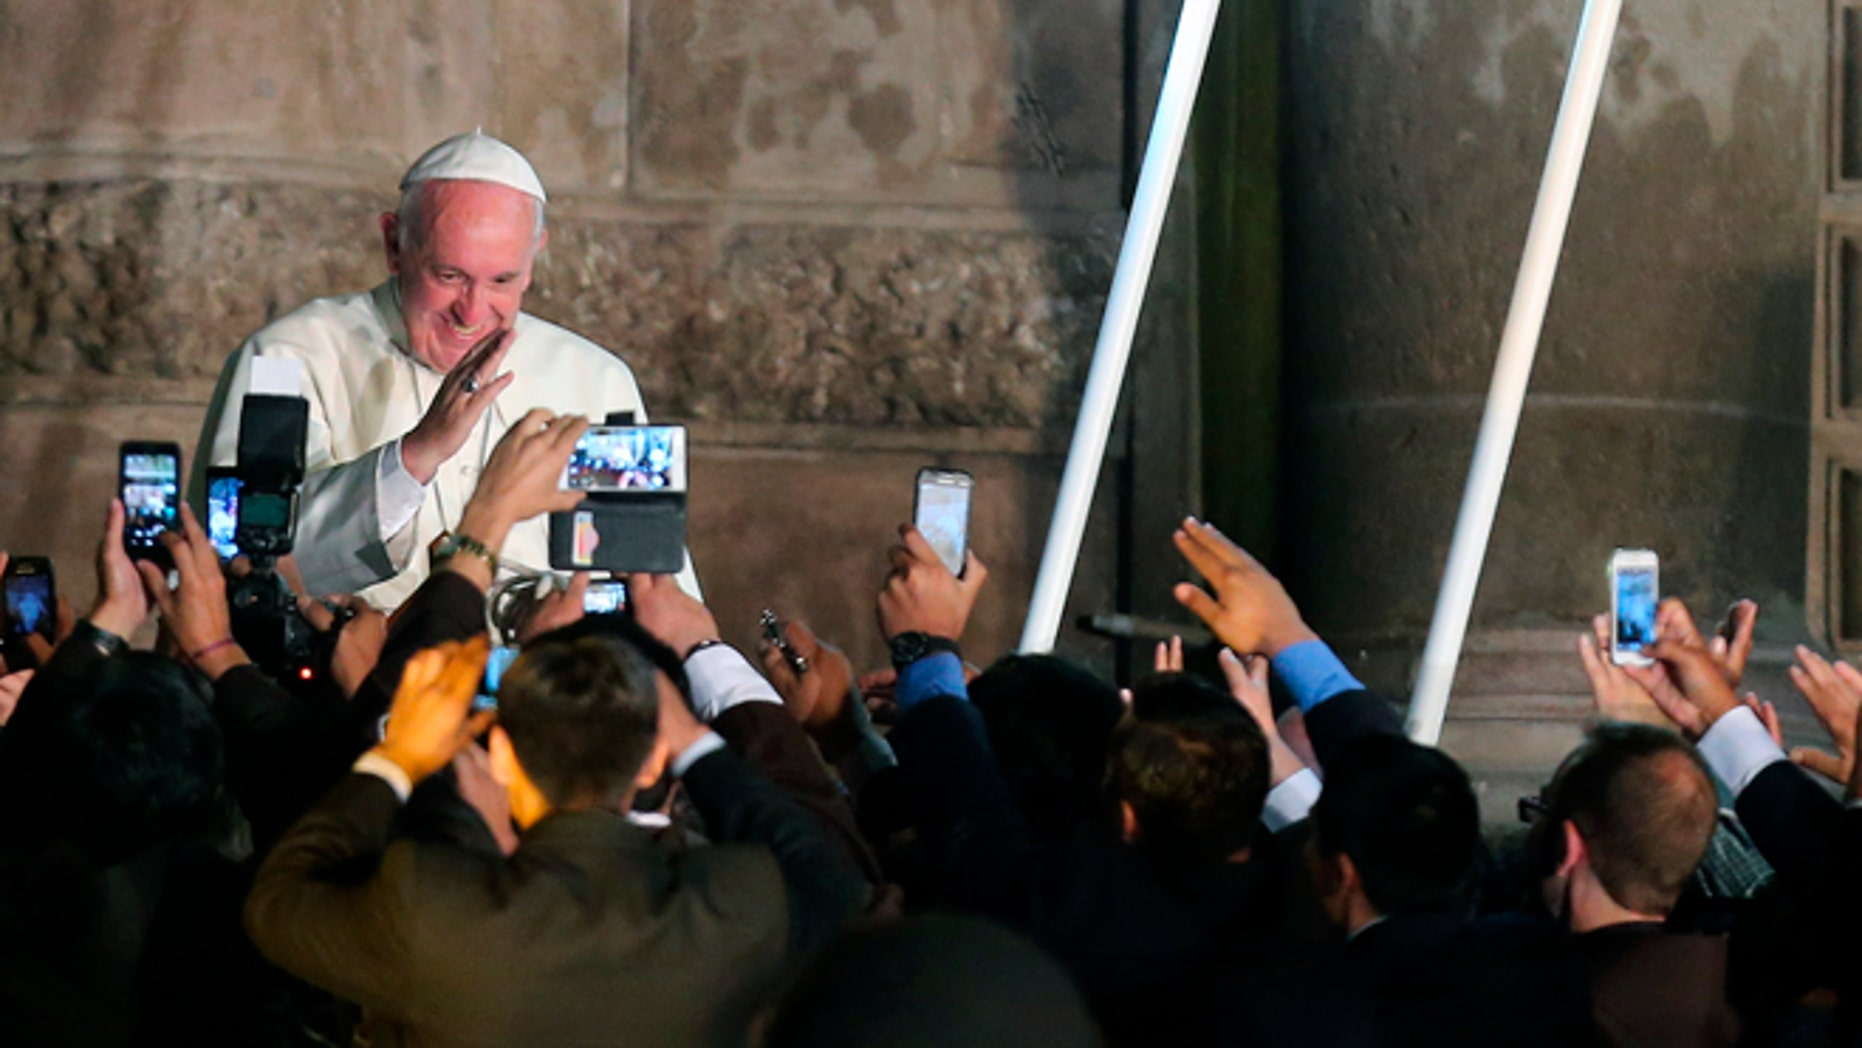 Faithful take picture with their mobile phones as Pope Francis departs from the San Francisco Church aboard the Popemobile, in Quito, Ecuador, Tuesday, July 7, 2015. The Pontiff met with representatives of civic organizations, entrepreneurs, indigenous communities and Catholic lay groups. (AP Photo/Fernando Llano)